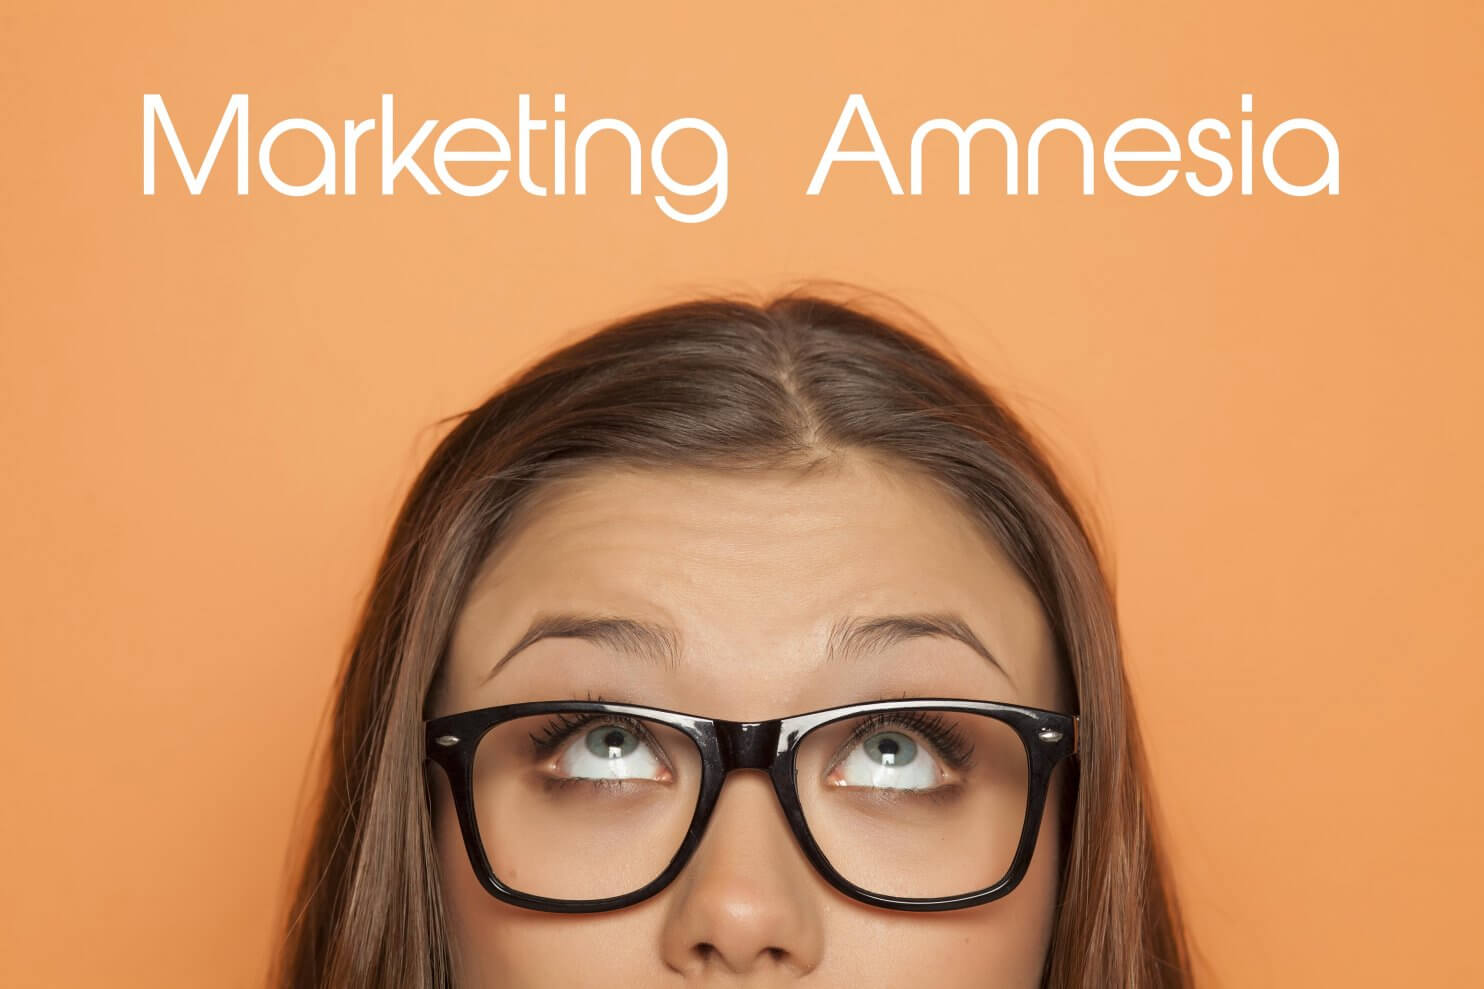 Overcoming Marketing Amnesia